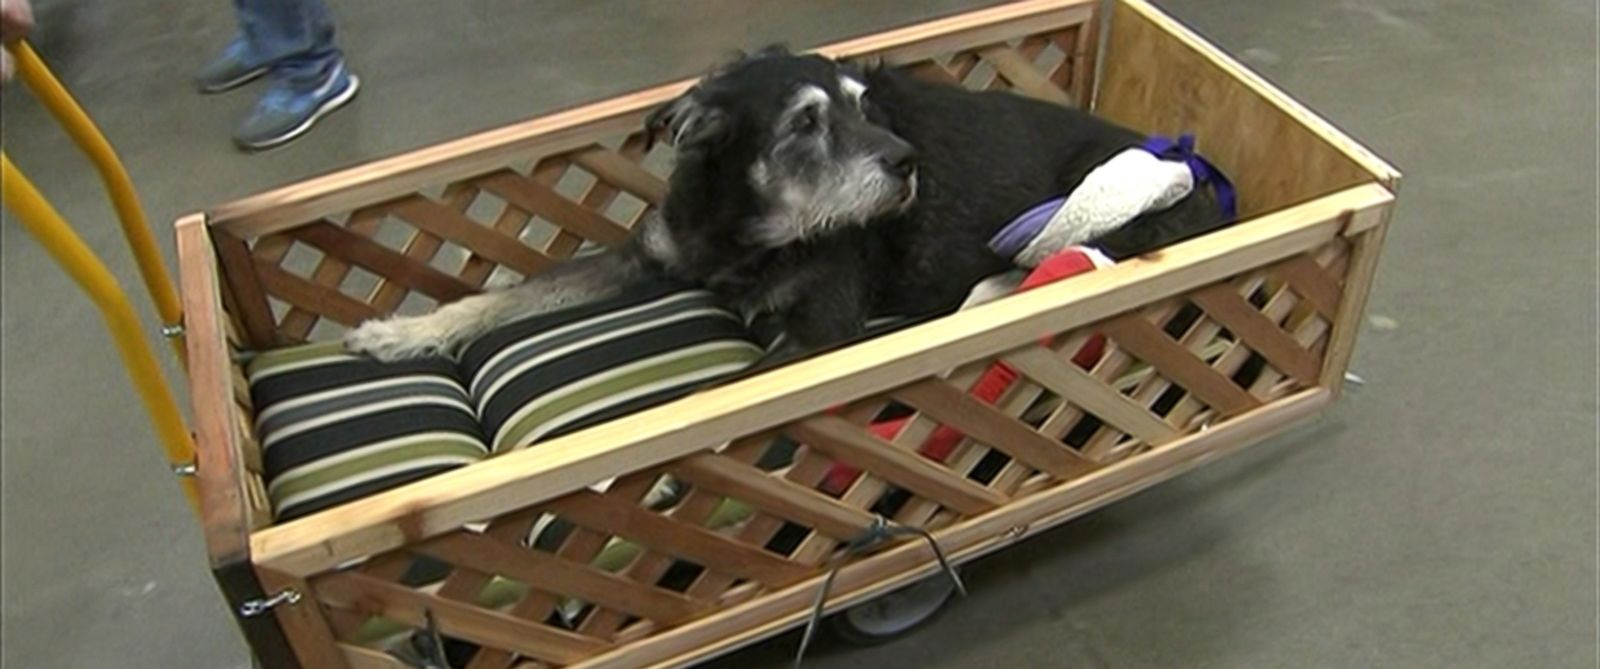 PHOTO: Ike is seen in a cart that was custom-built by two Home Depot employees.